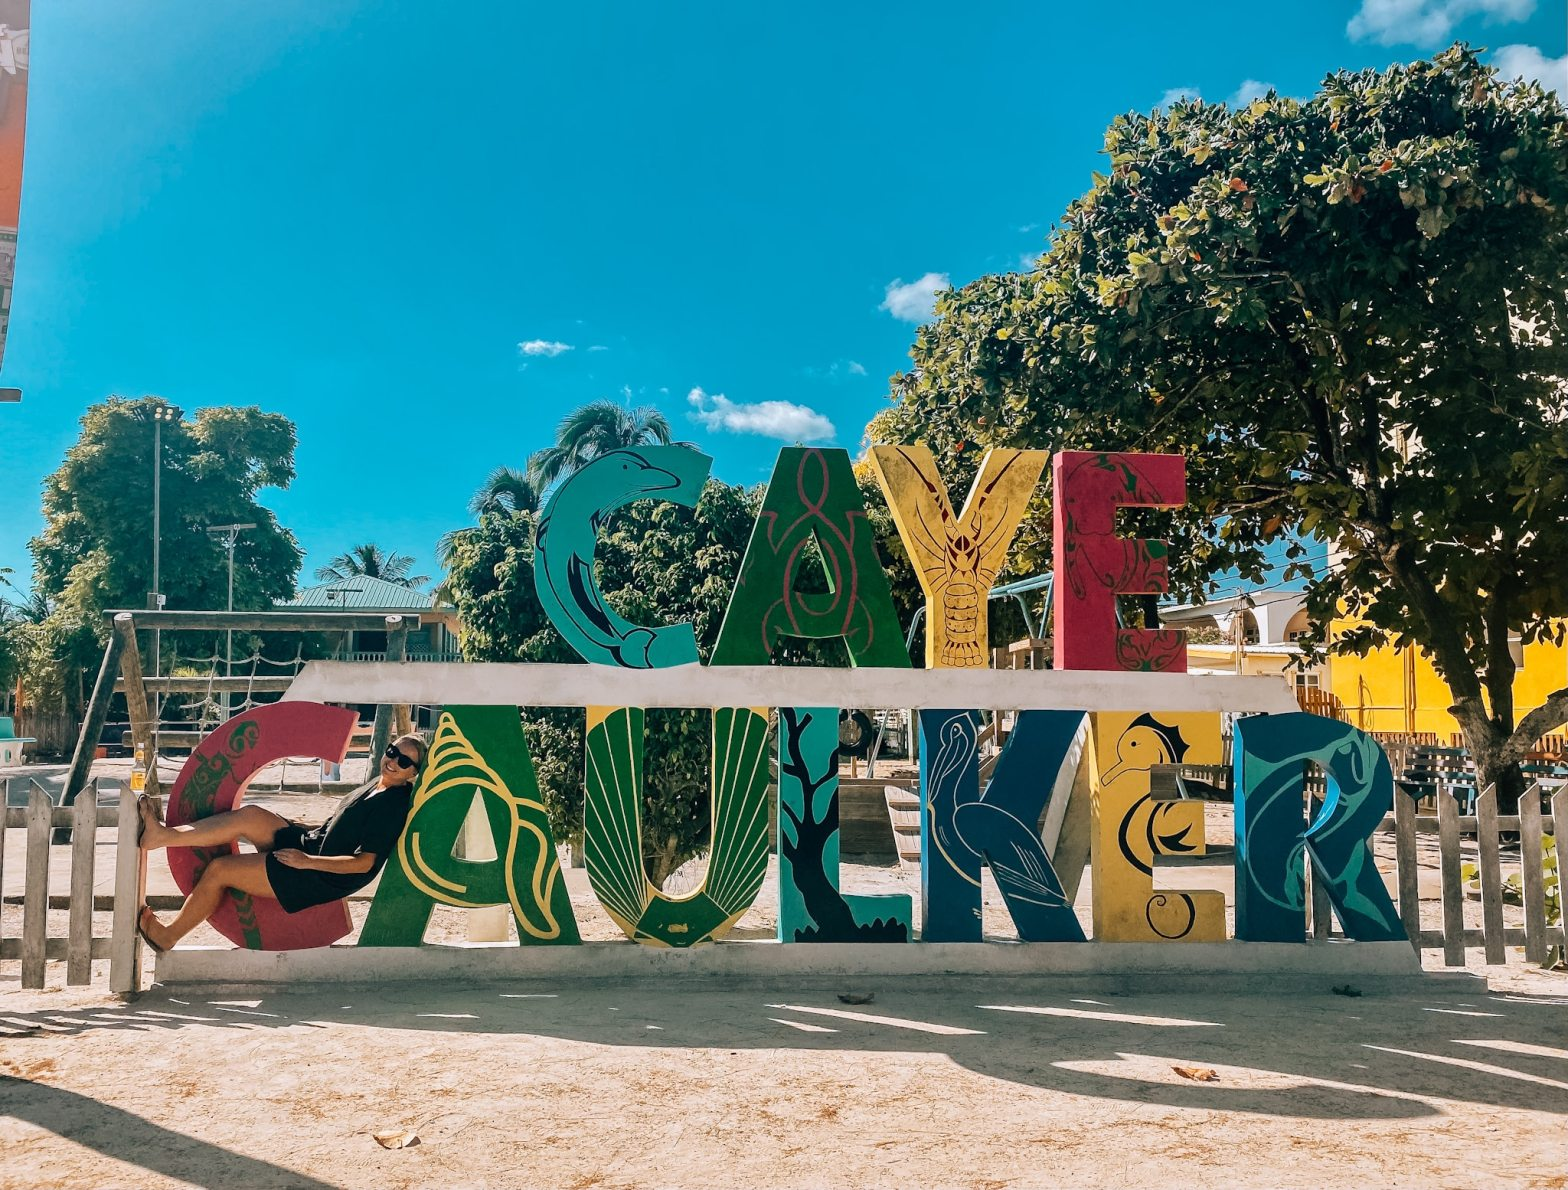 Woman sitting in the C of the Caye Caulker sign